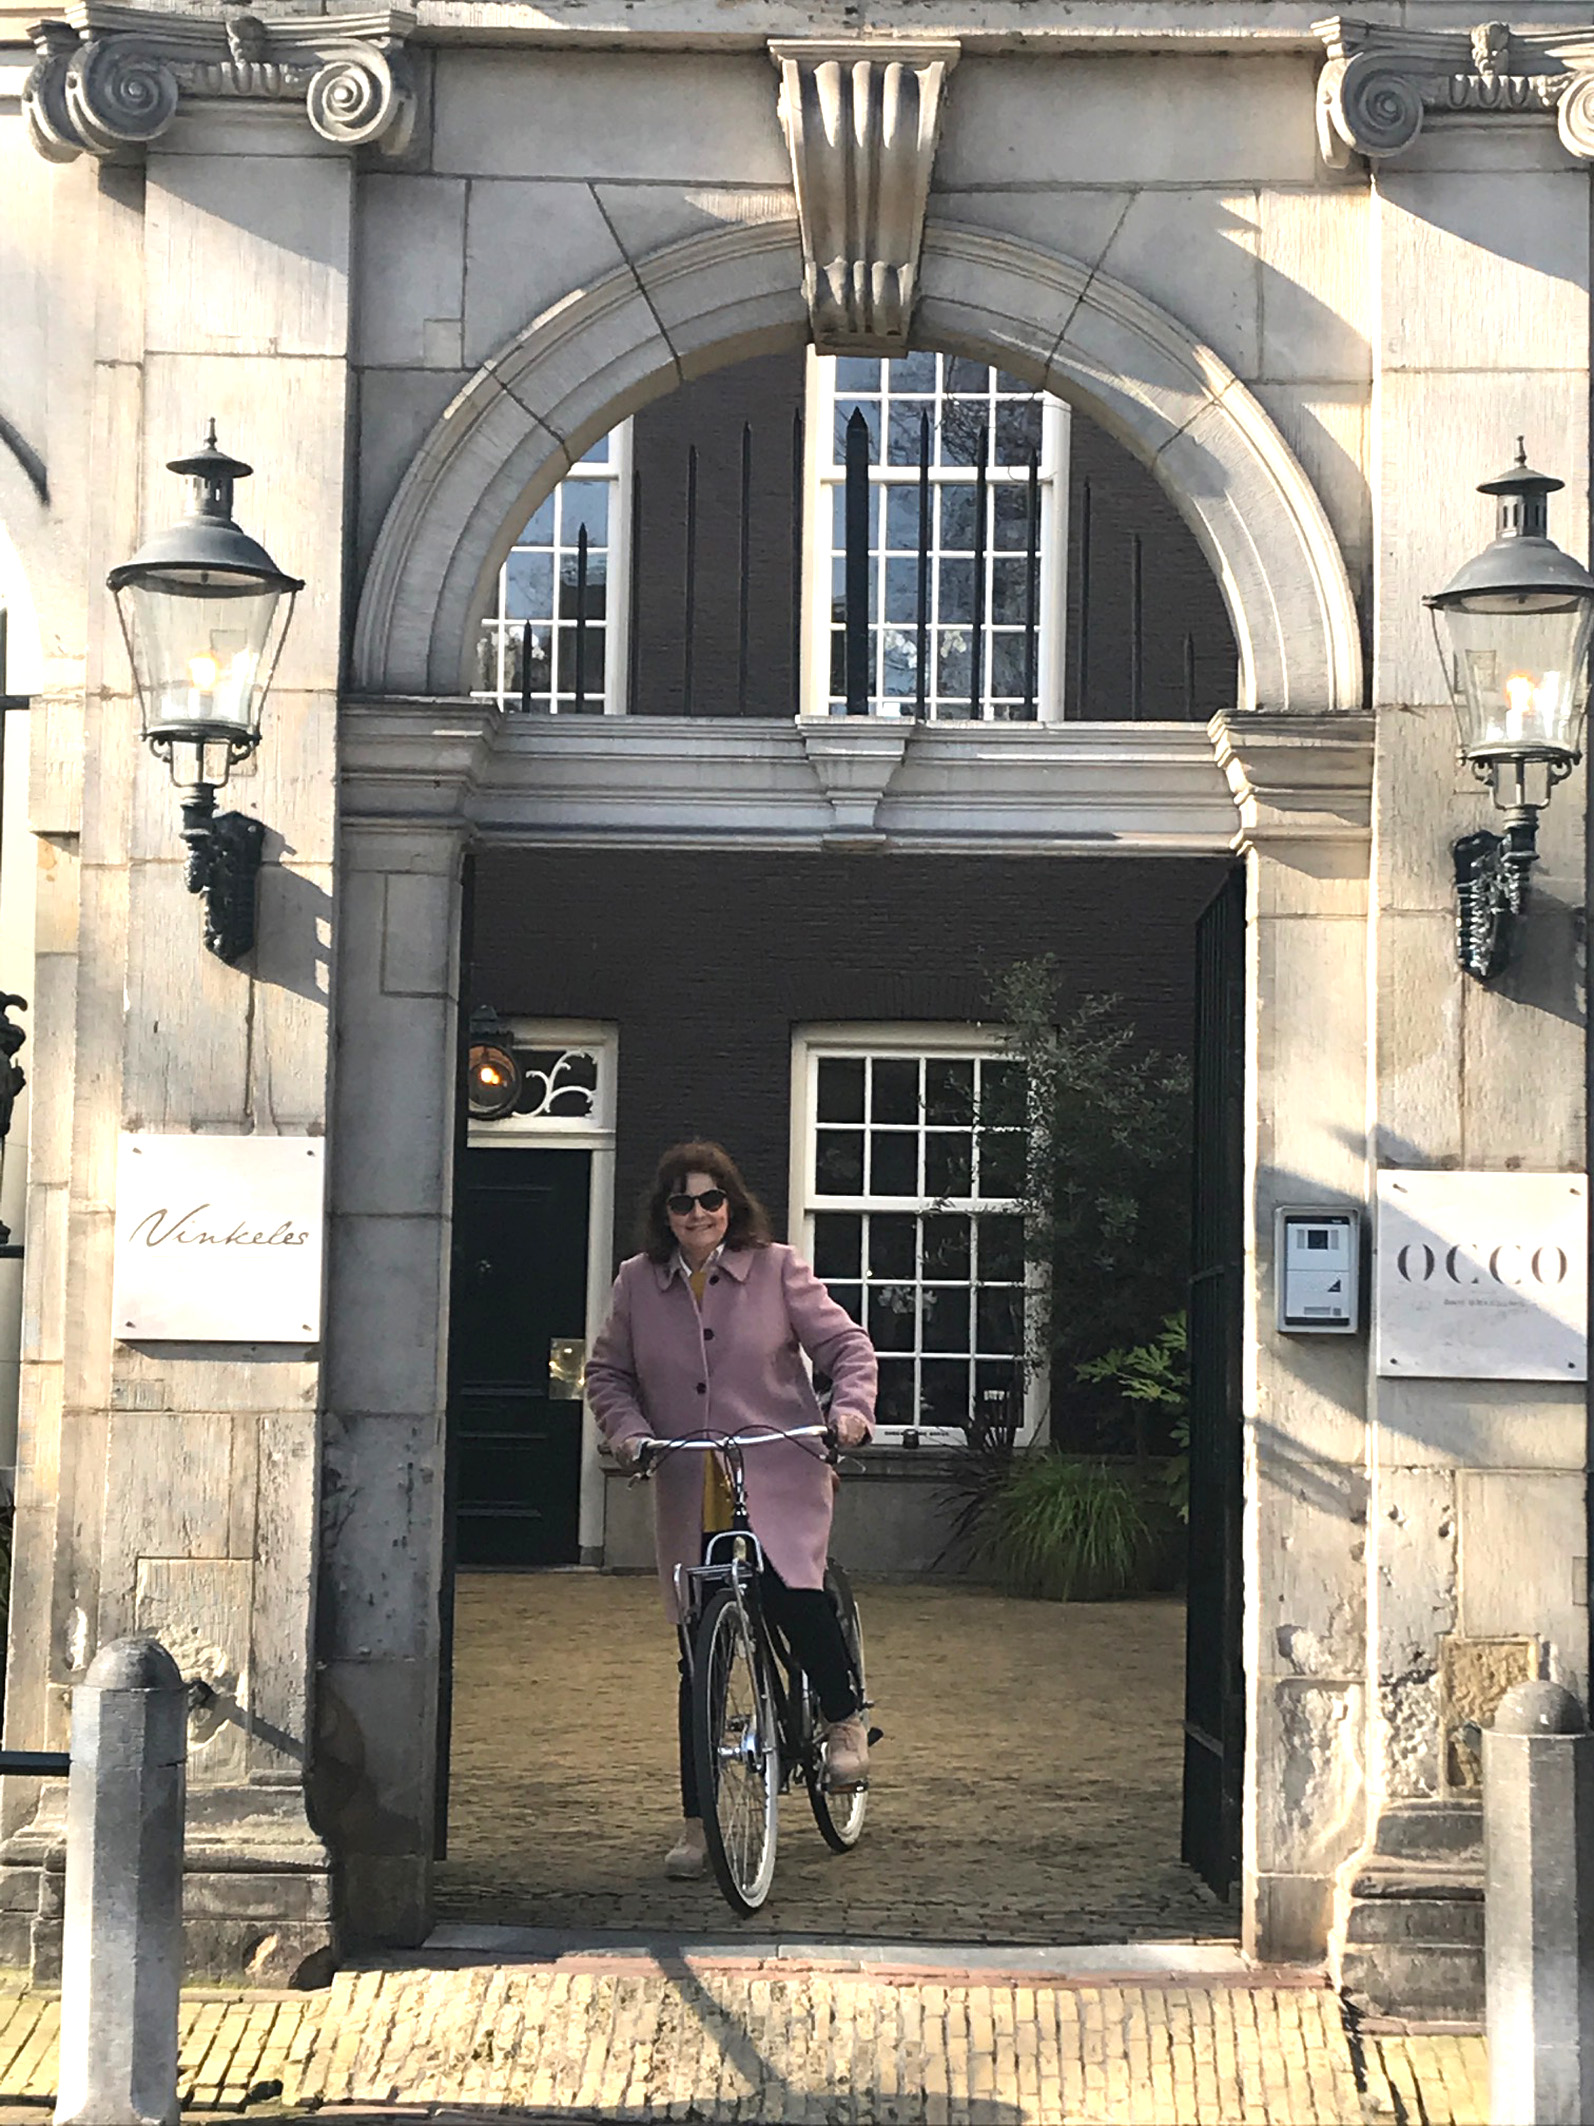 Gabrielle Fagan in the courtyard entrance to the Dylan Hotel, in the heart of Amsterdam's most fashionable district, The Nine Streets (Gabrielle Fagan/PA)